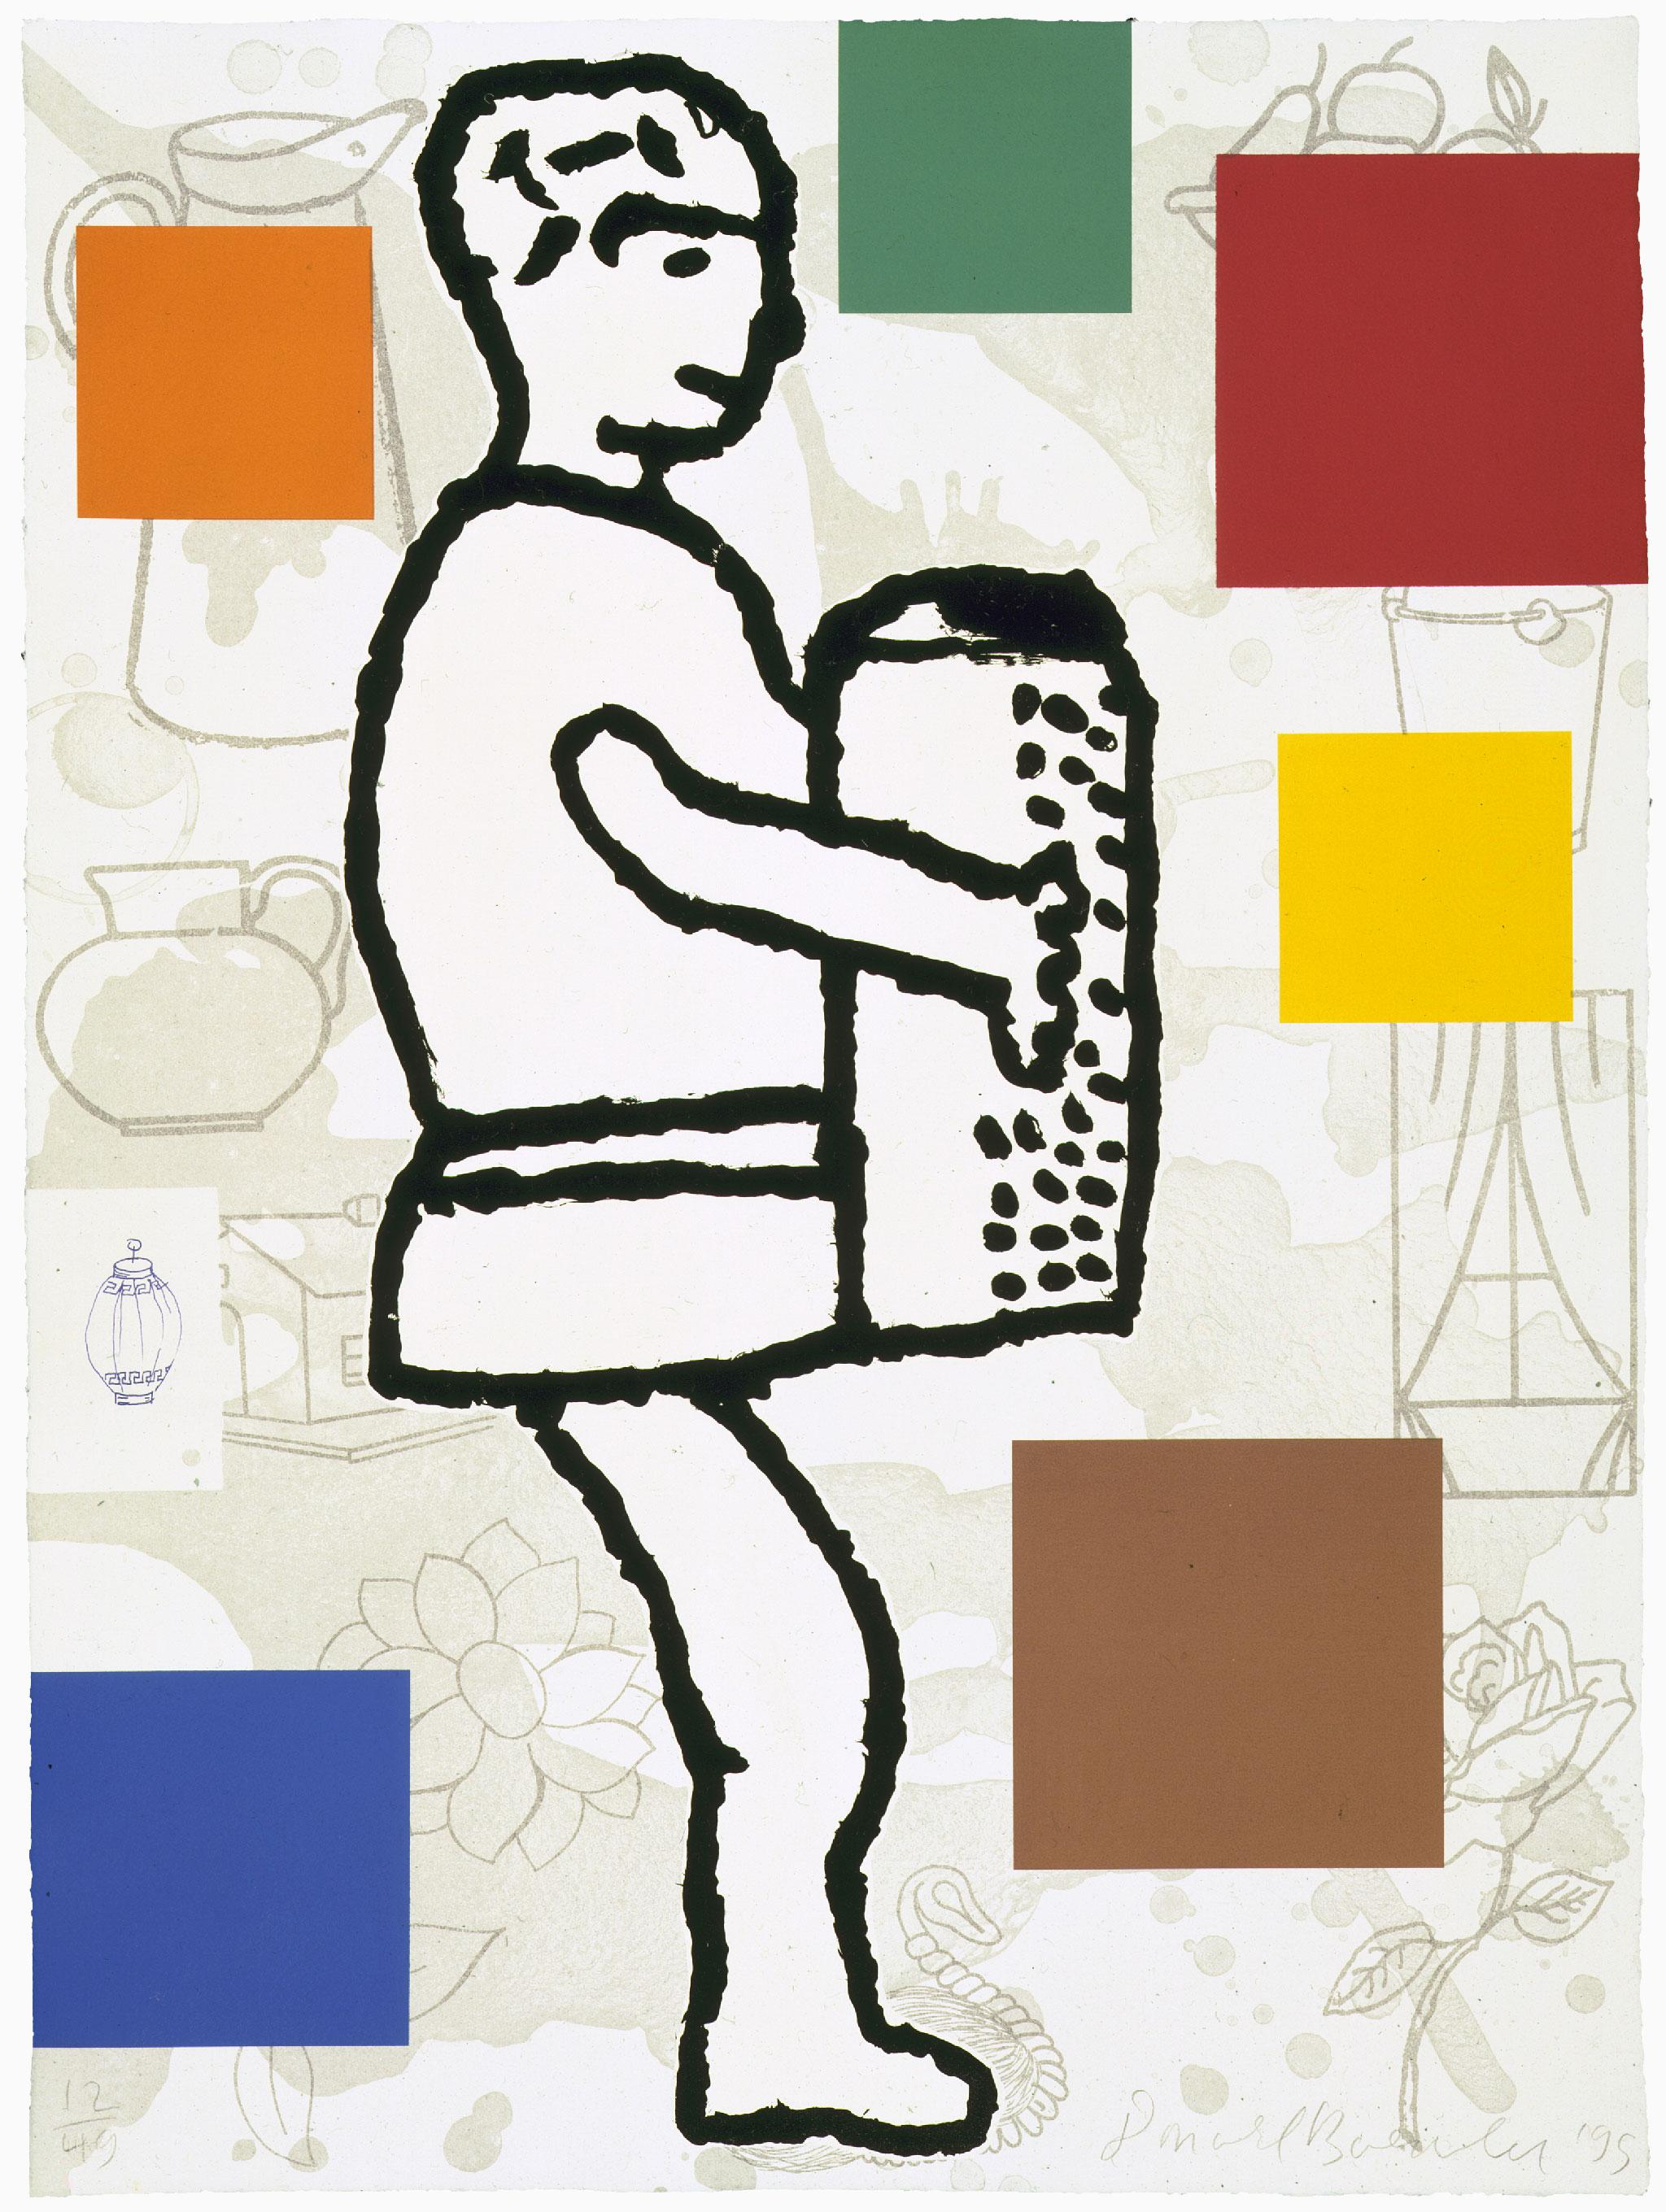 The Accordion Player #1